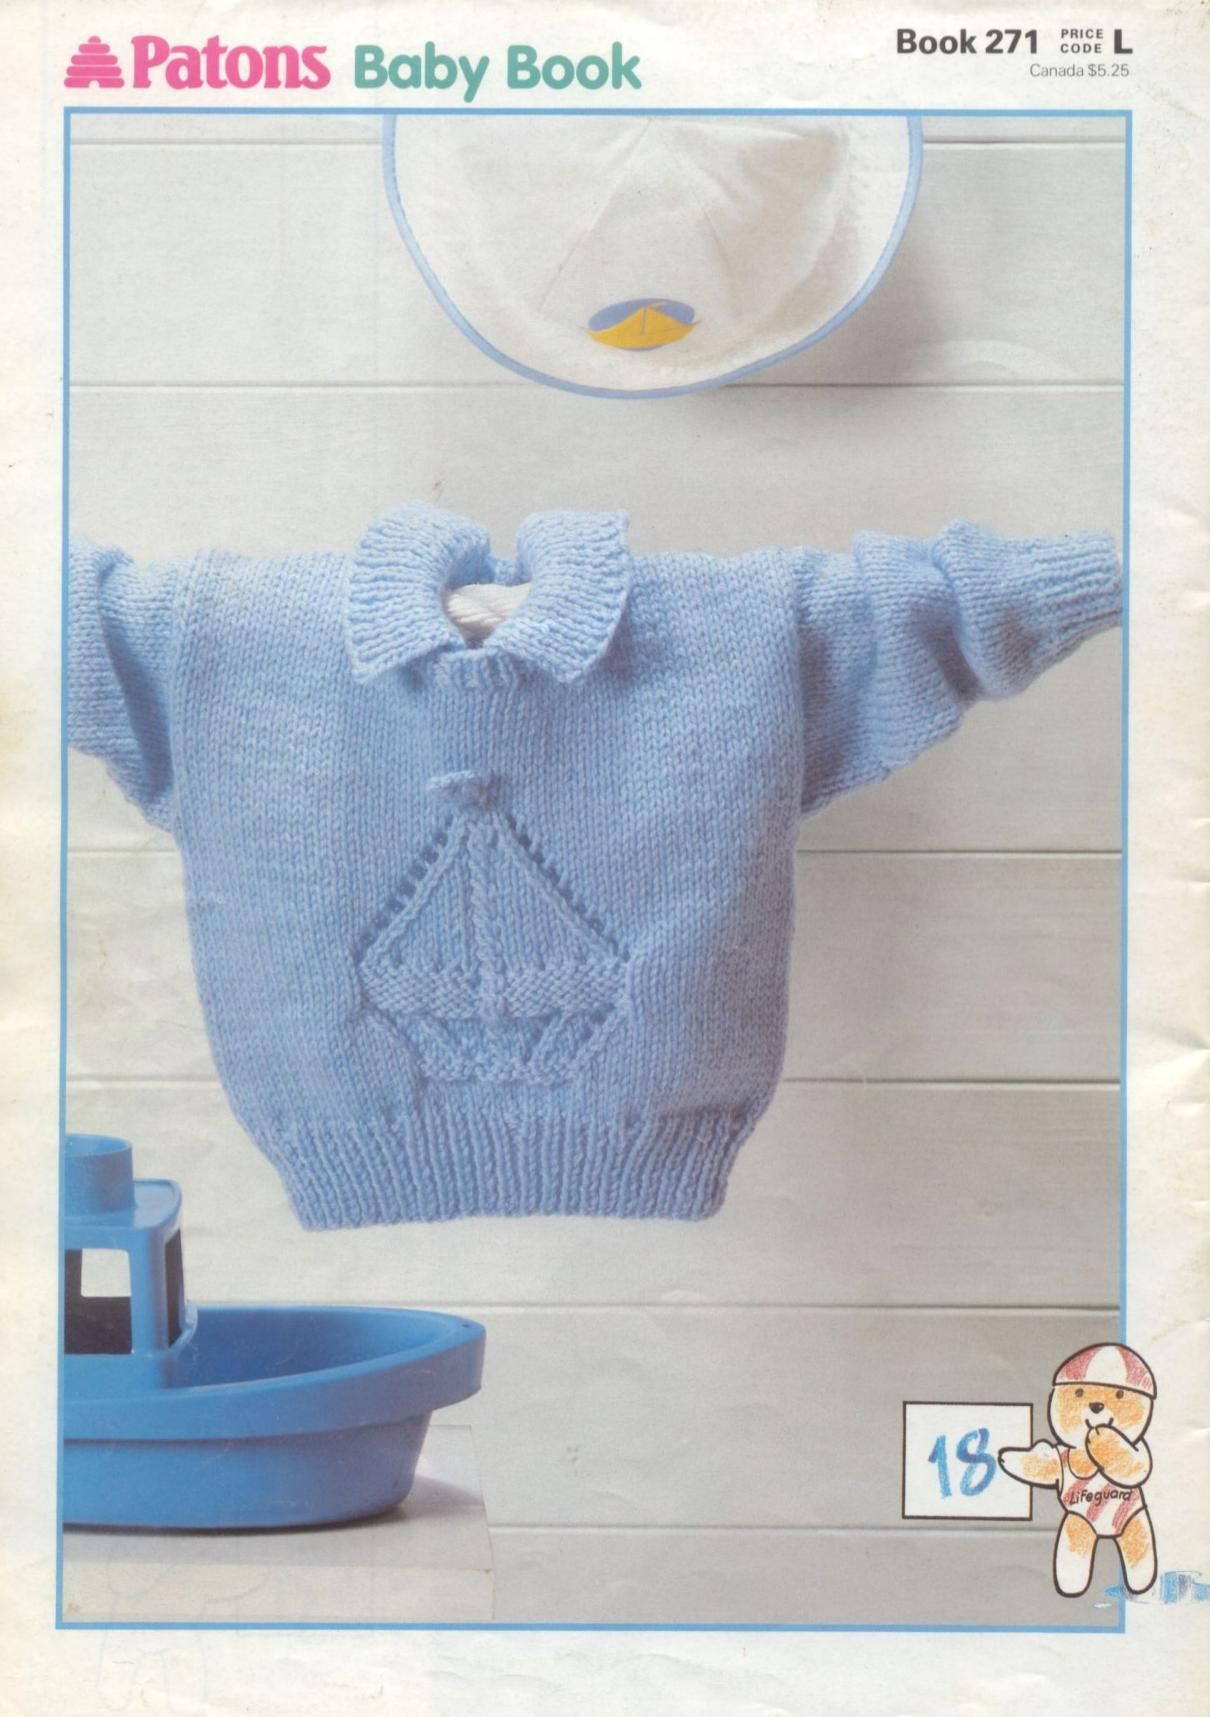 Patons 271 Baby Book   Knits for kids   Pinterest   Babies, Baby ...